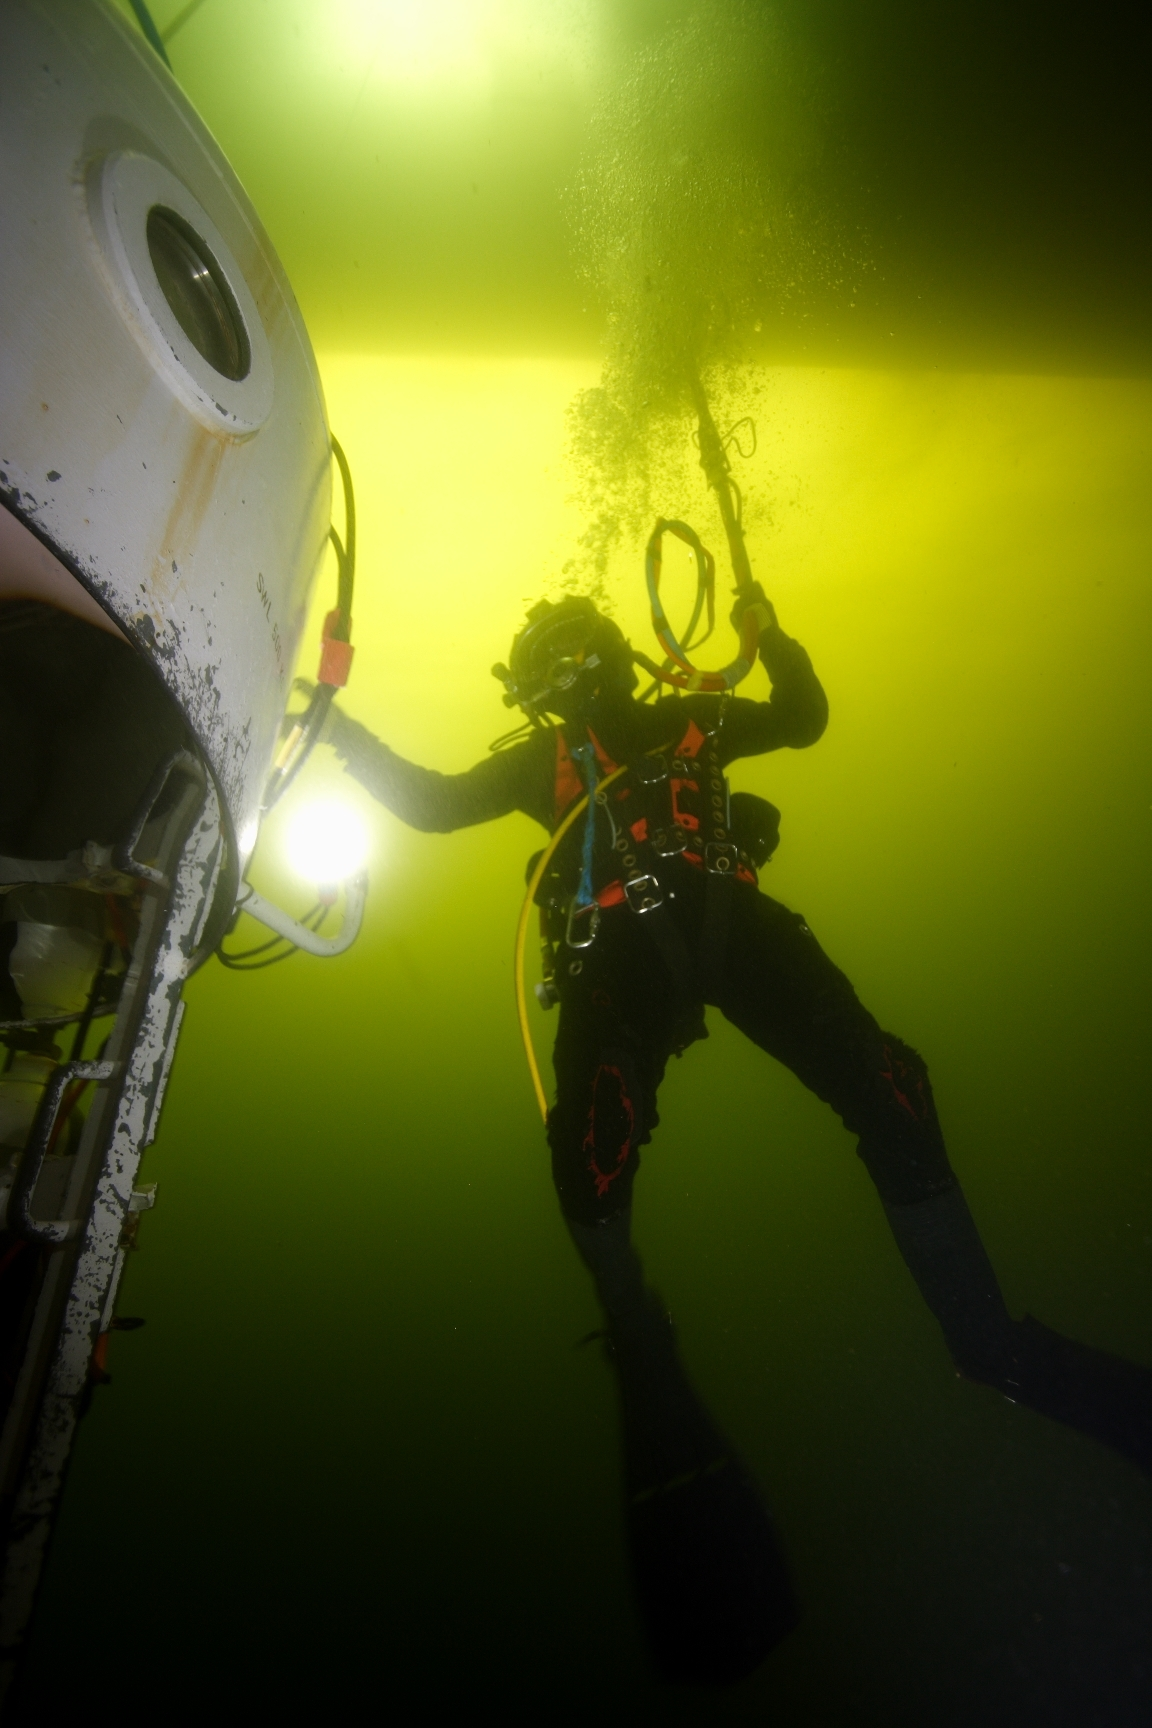 A diver being put through his paces at The Underwater Centre in Fort William.